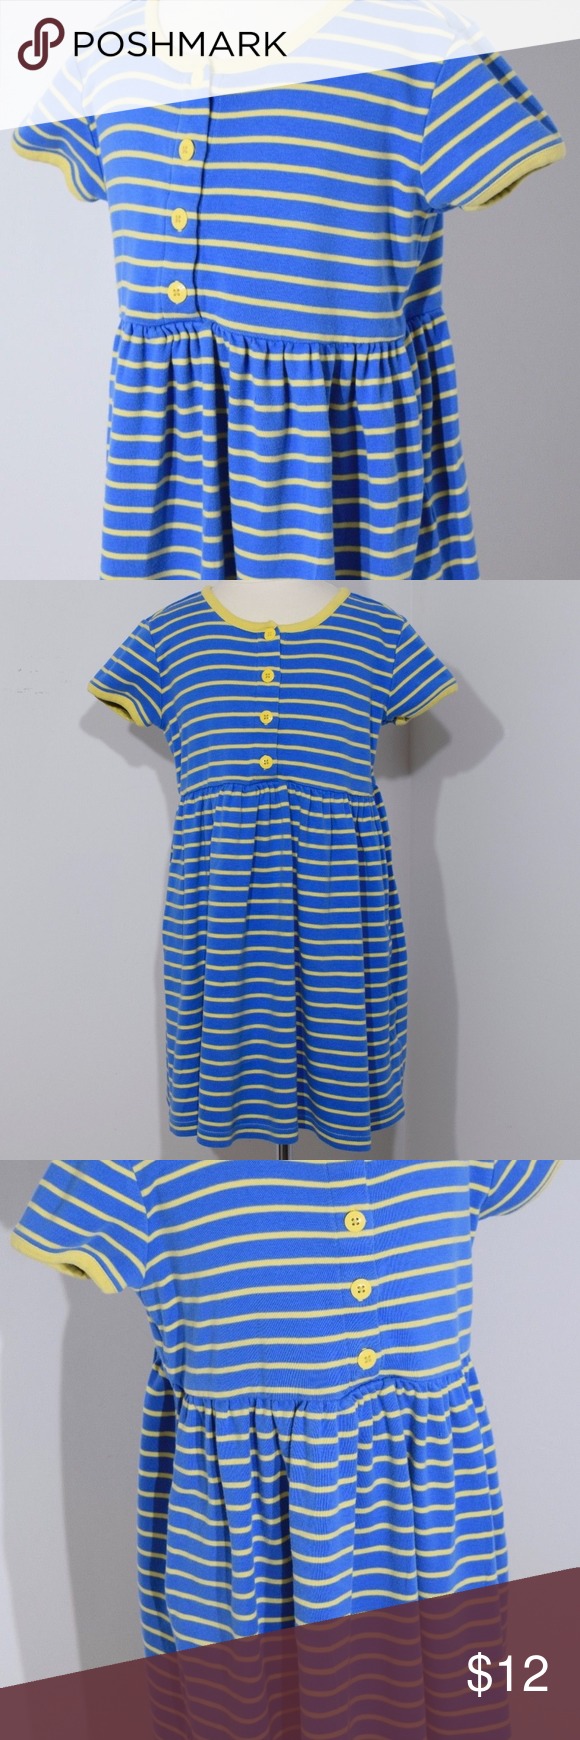 Hanna Andersson Girls Baby Doll Dress sz 120 6/7 3143 S